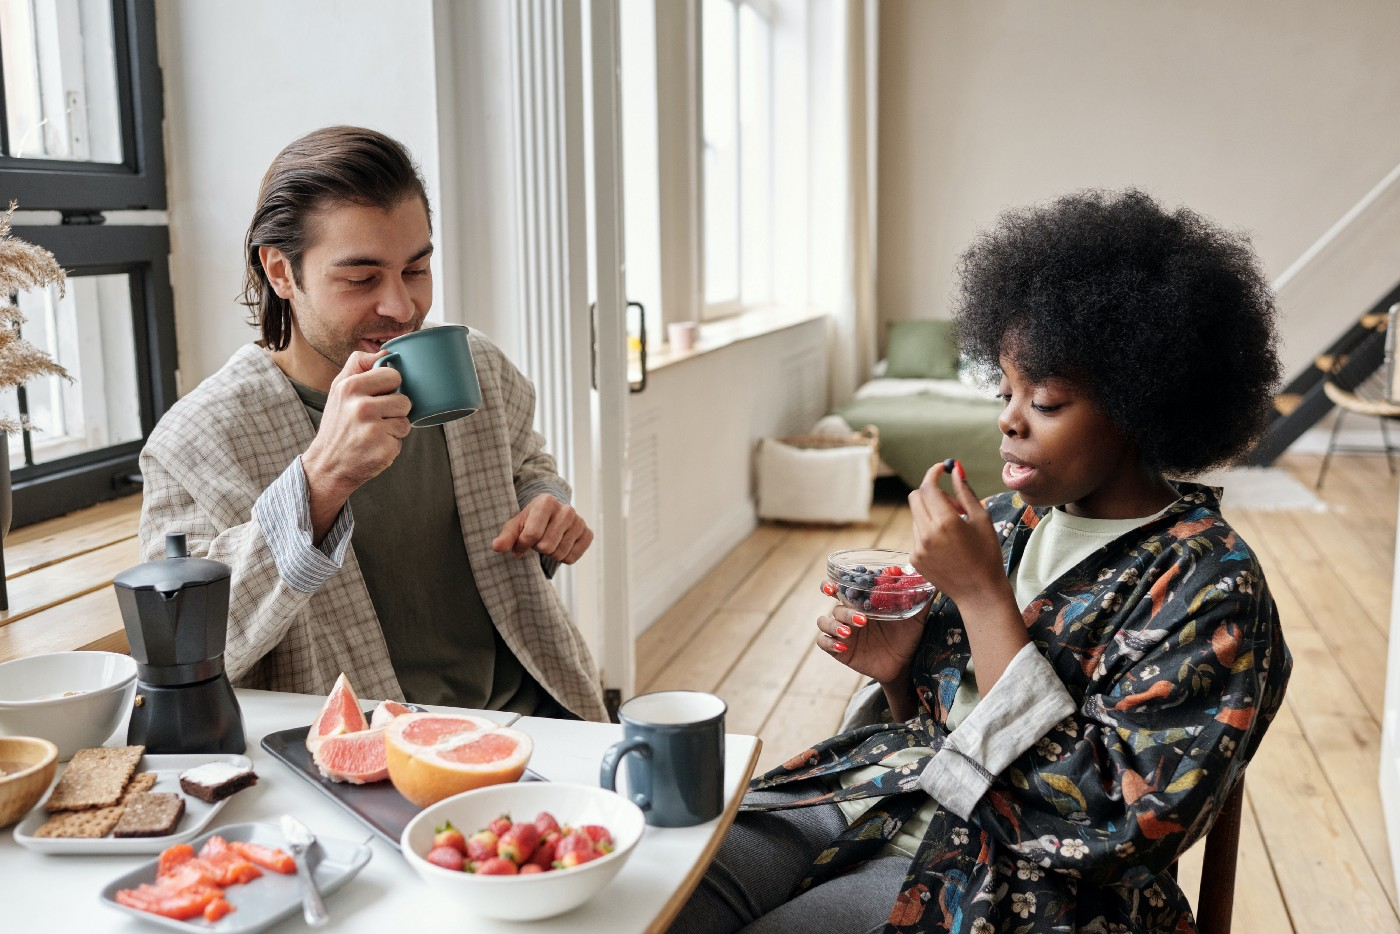 Man and a woman at a table eating breakfast